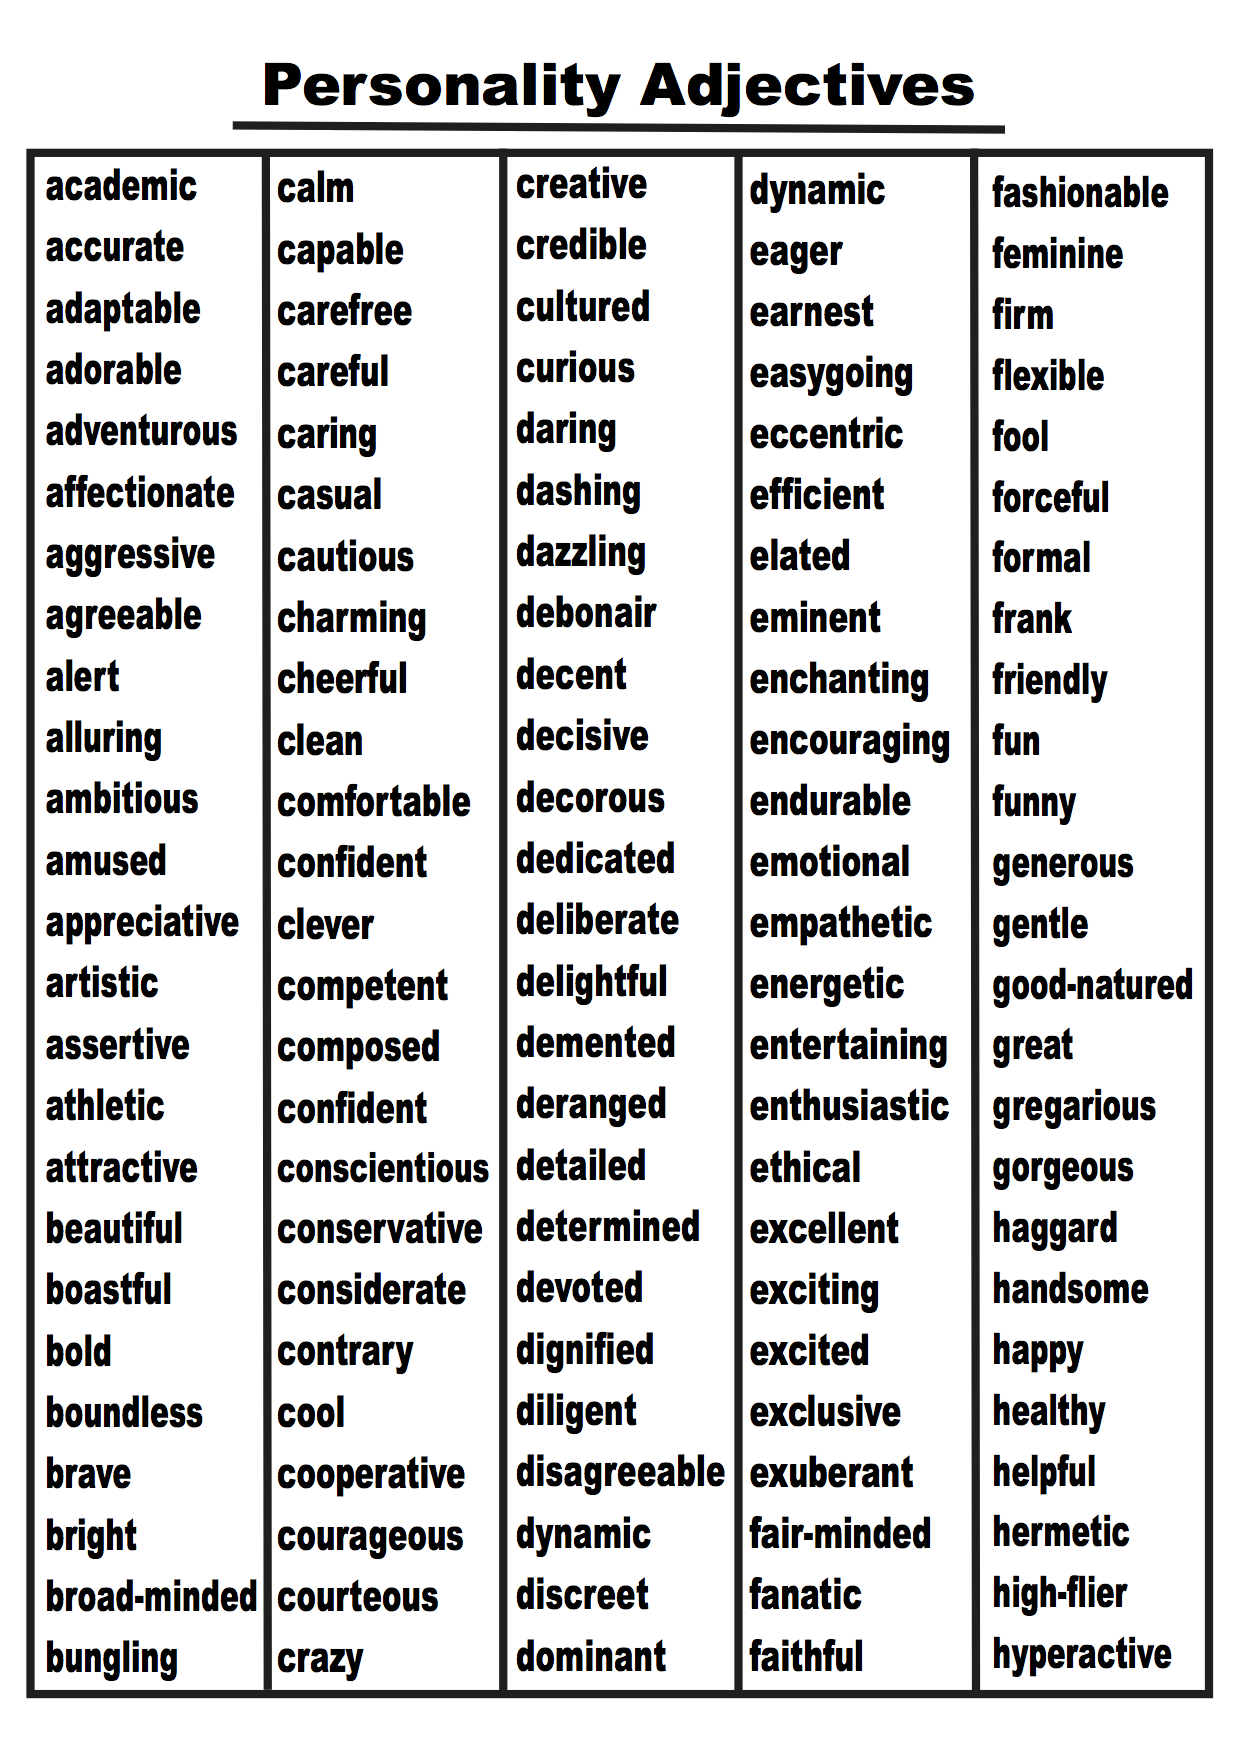 Download A Classroom Ready 300 Word Personality Adjectives List Print Out An A3 Version And You